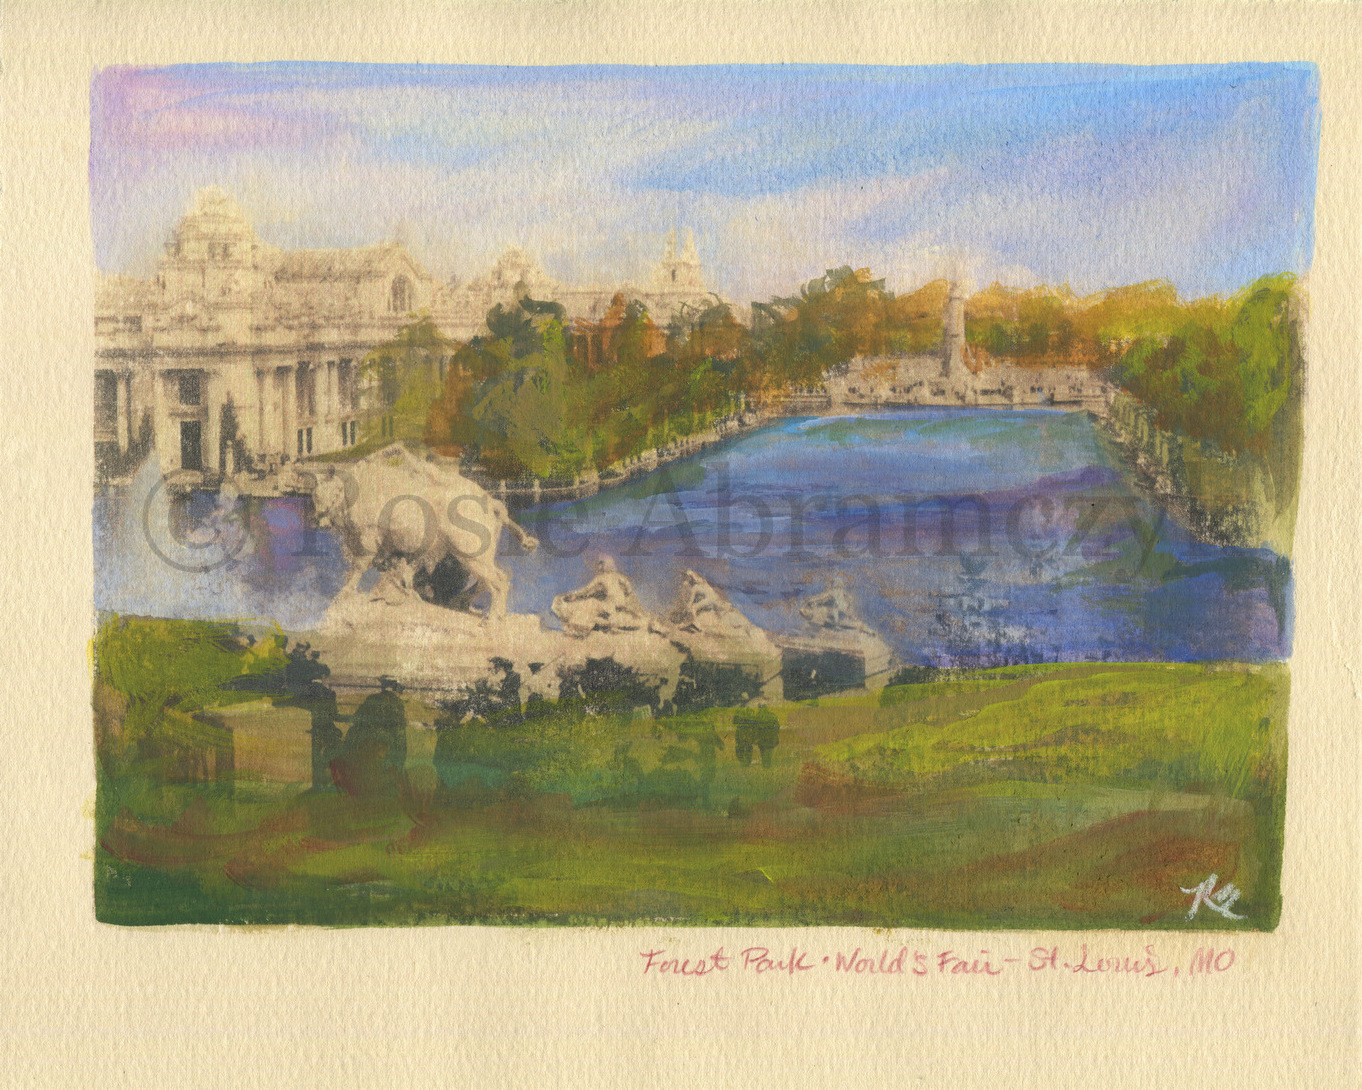 Forest Park and The World's Fair, St. Louis, MO, by Rosie Abramczyk, Gouache and Xerox Transfer, 200